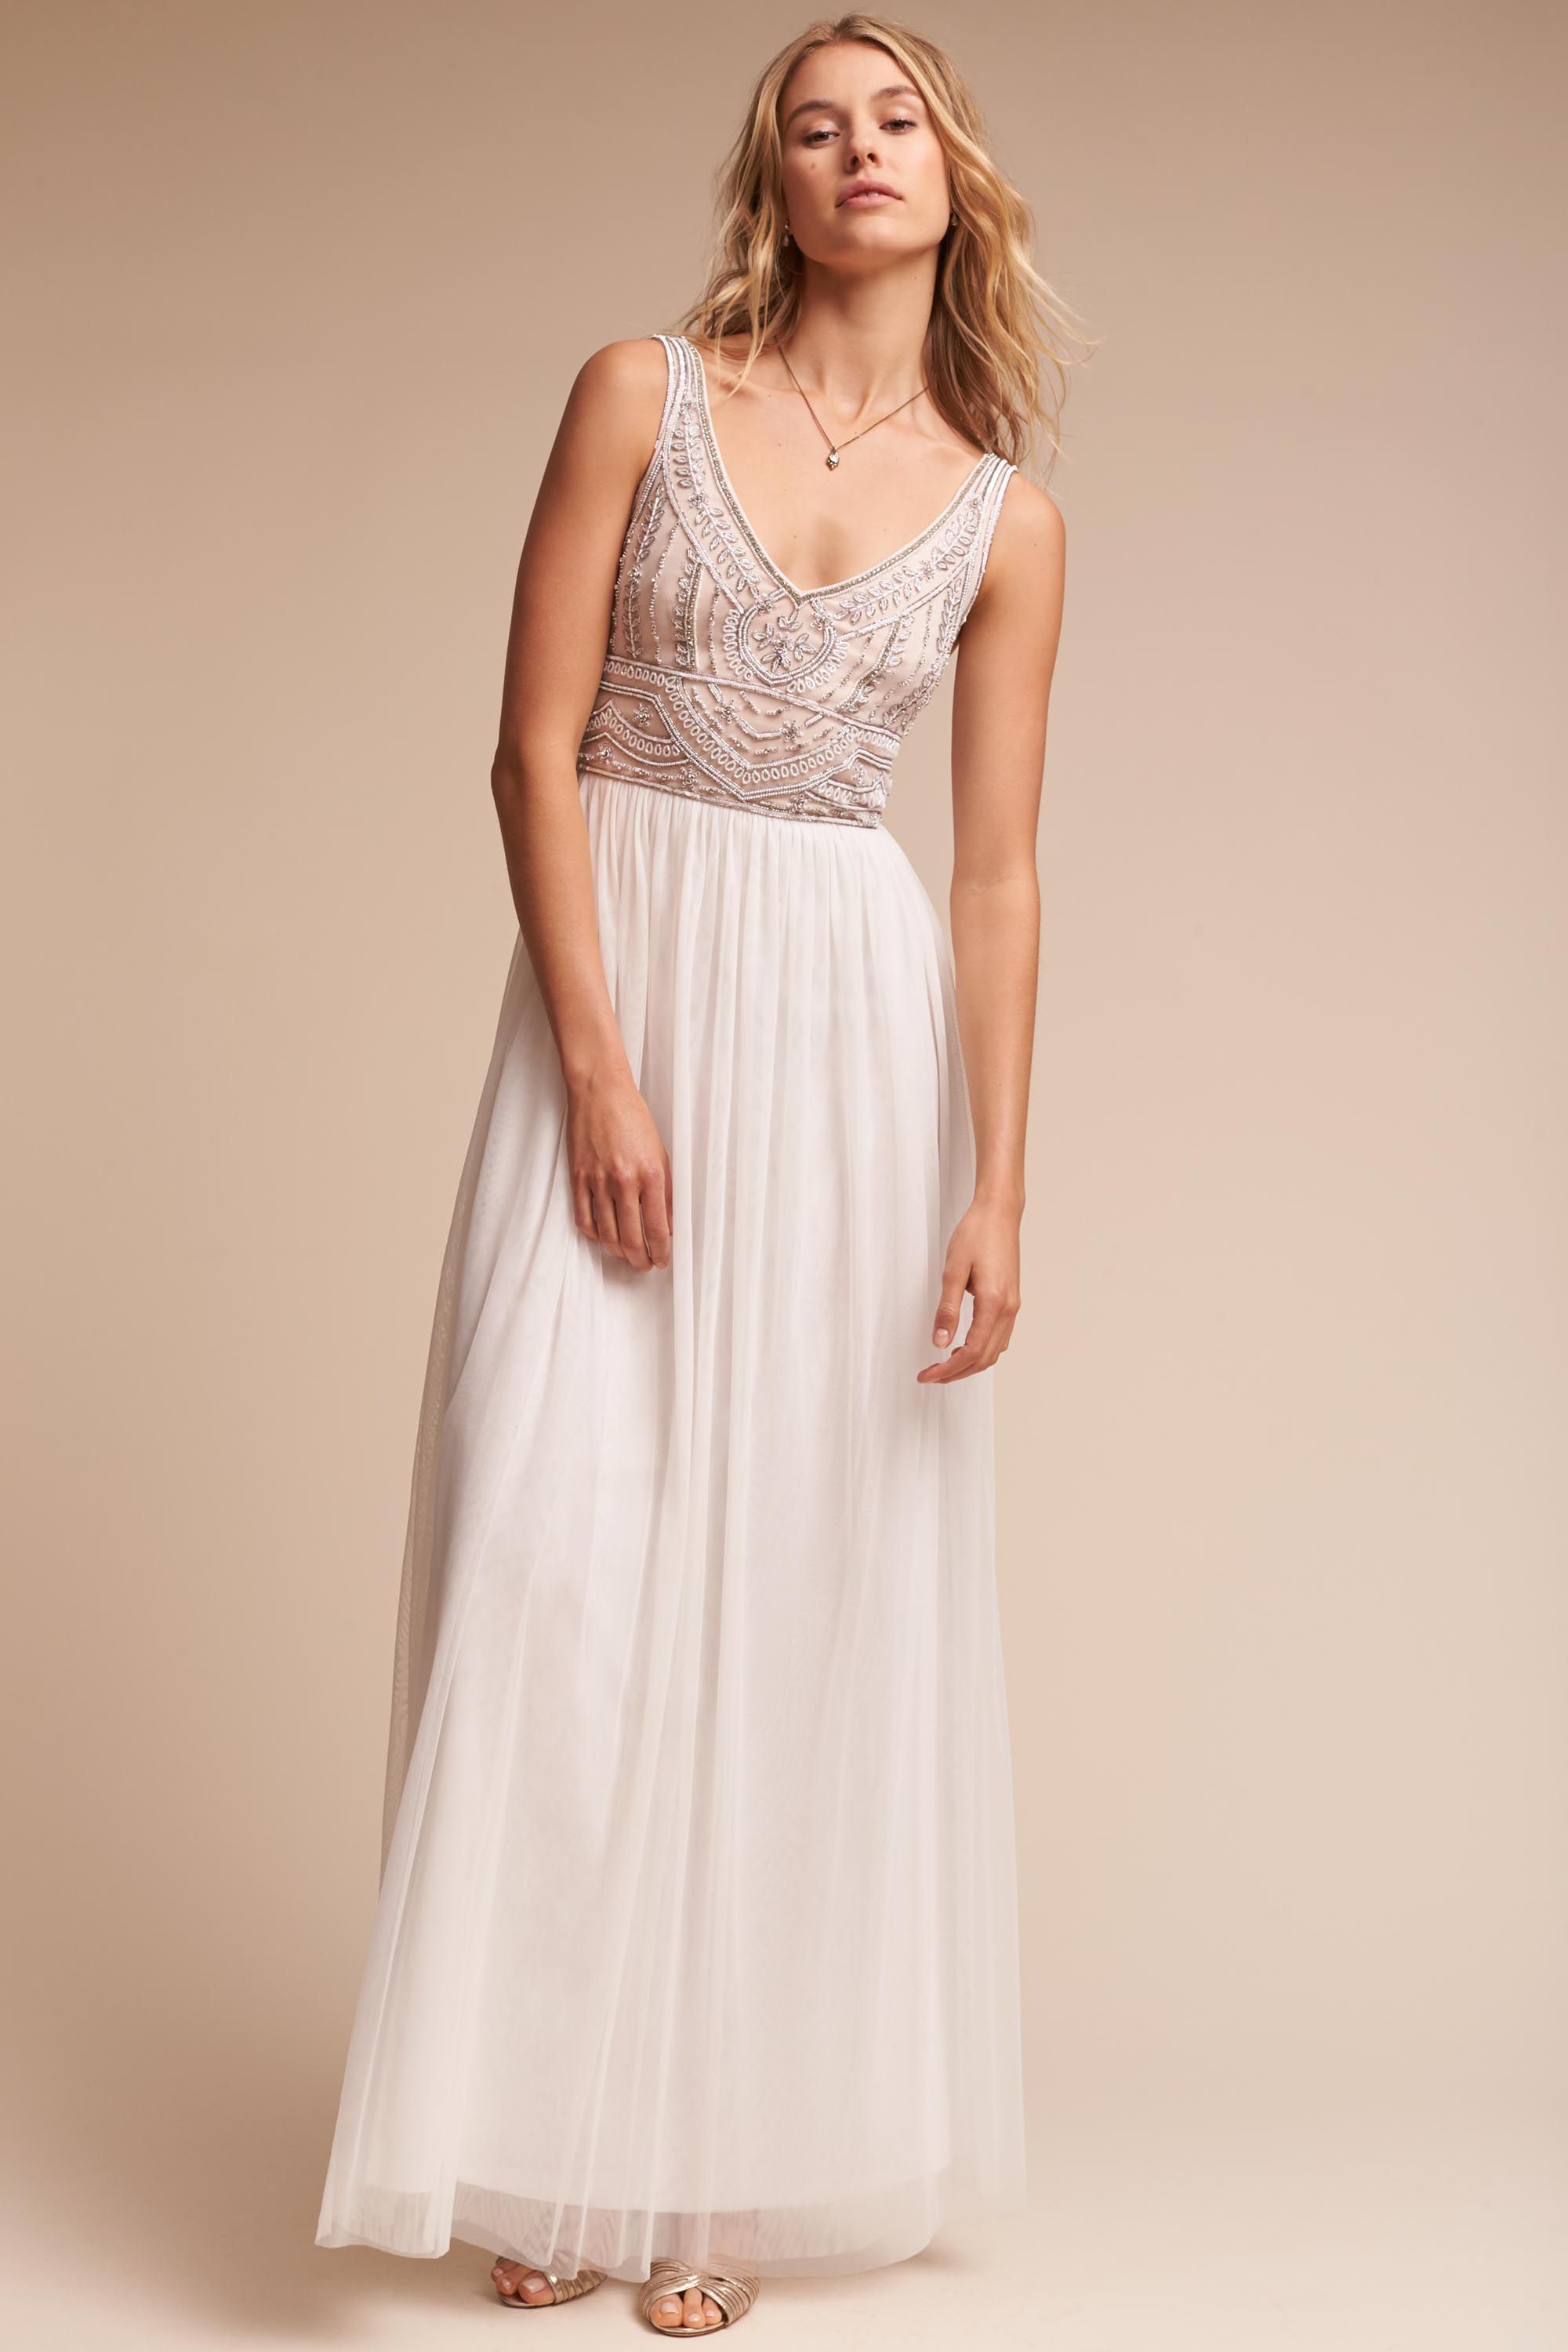 Sterling Dress from @BHLDN | Bridal Gowns | Pinterest